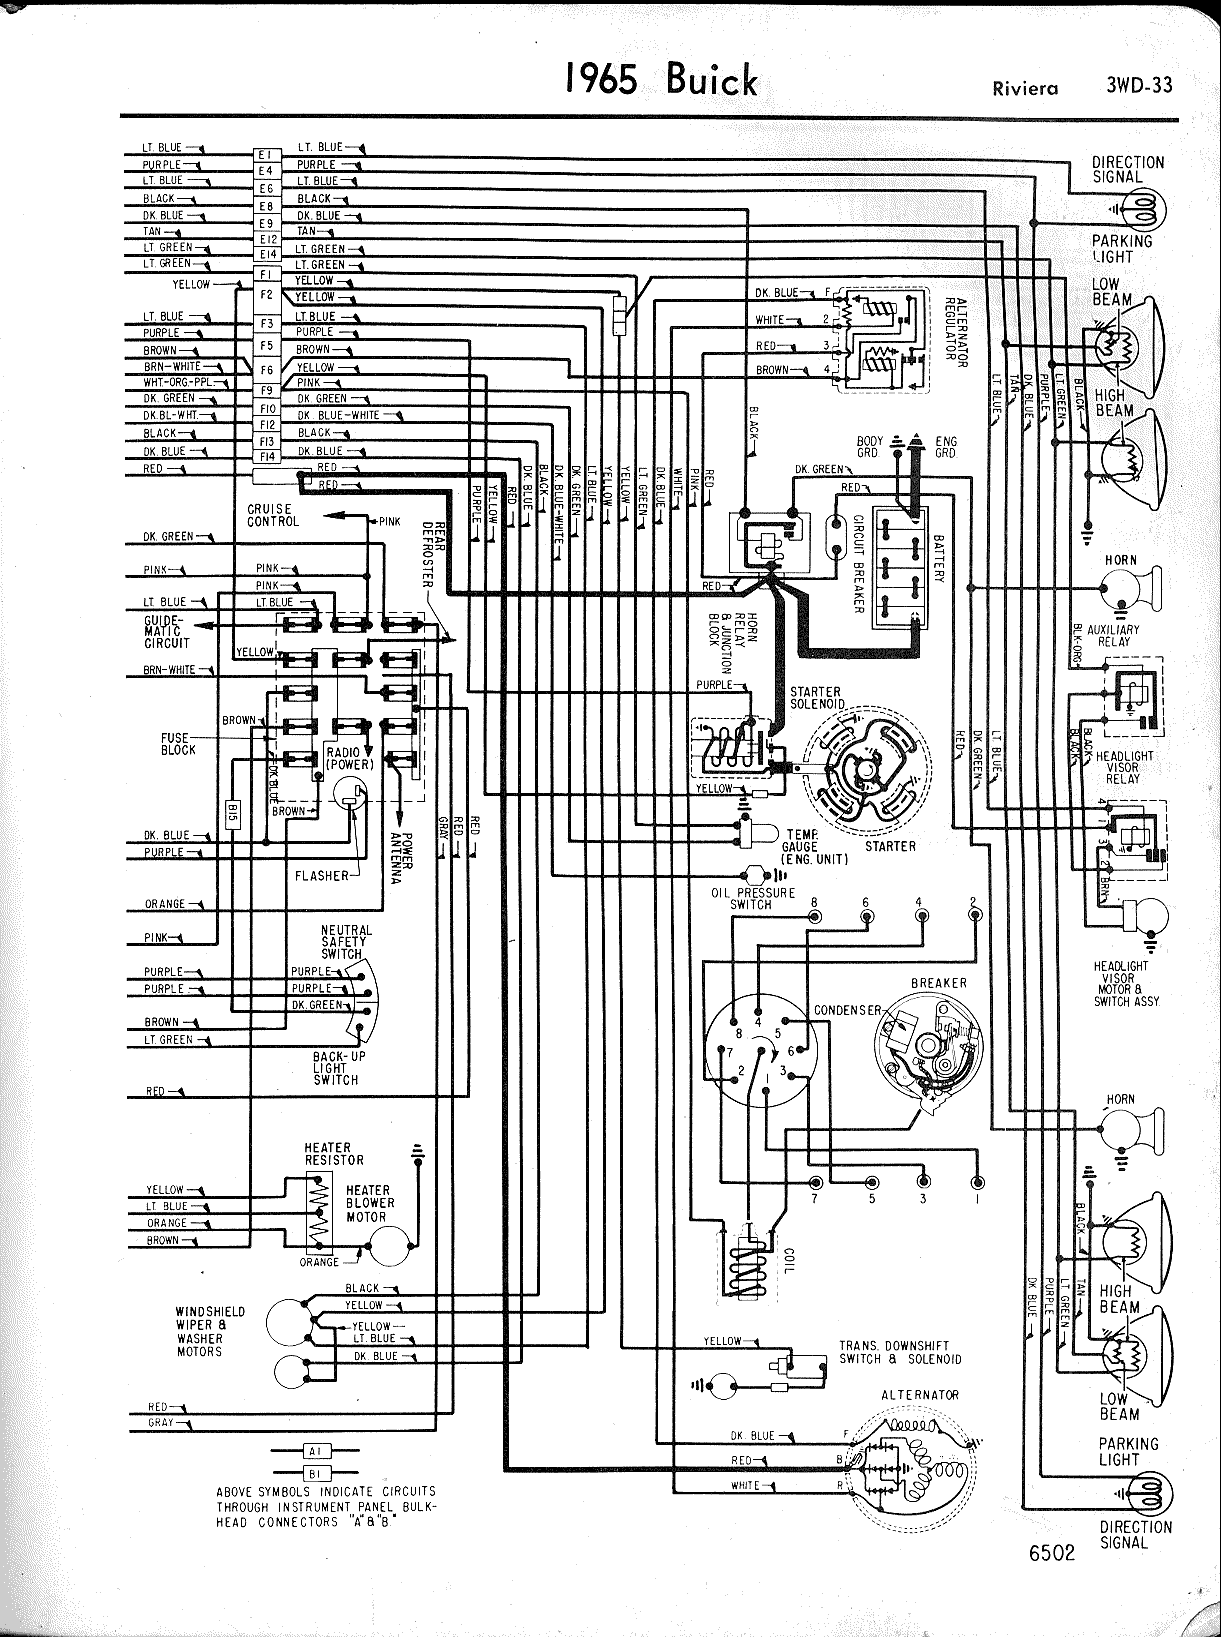 94 Buick Lesabre Fuse Box Diagram Wiring Library. 1967 Buick Skylark Fuse Box Diagram List Of Schematic Circuit 1994 Lesabre. Buick. Trunk Latch Wiring Diagram 1995 Buick Roadmaster At Scoala.co